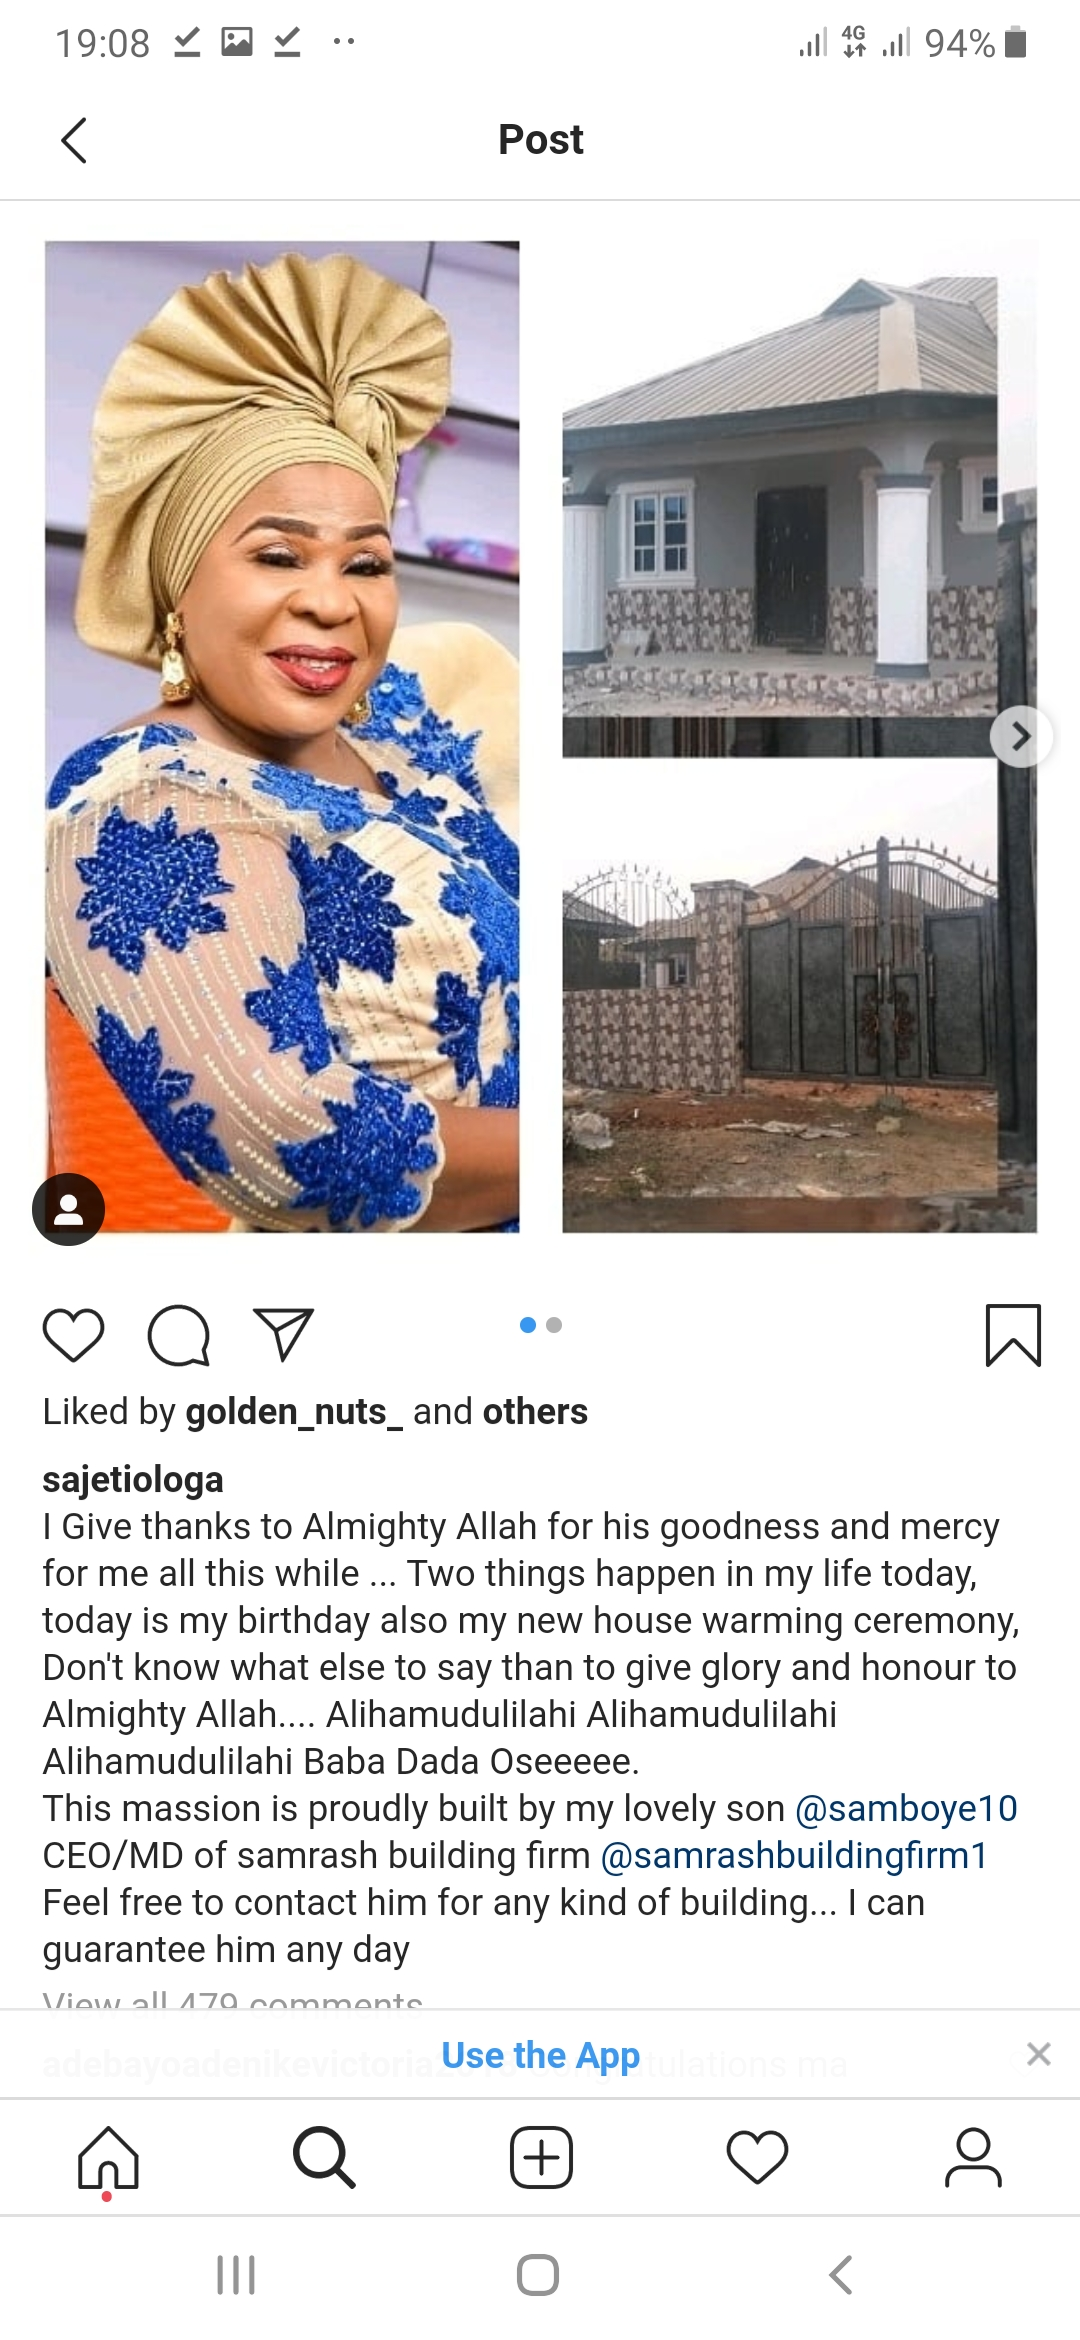 Screenshot 20200213 190807 Chrome - Fausat Balogun Marks Birthday With House Warming Party